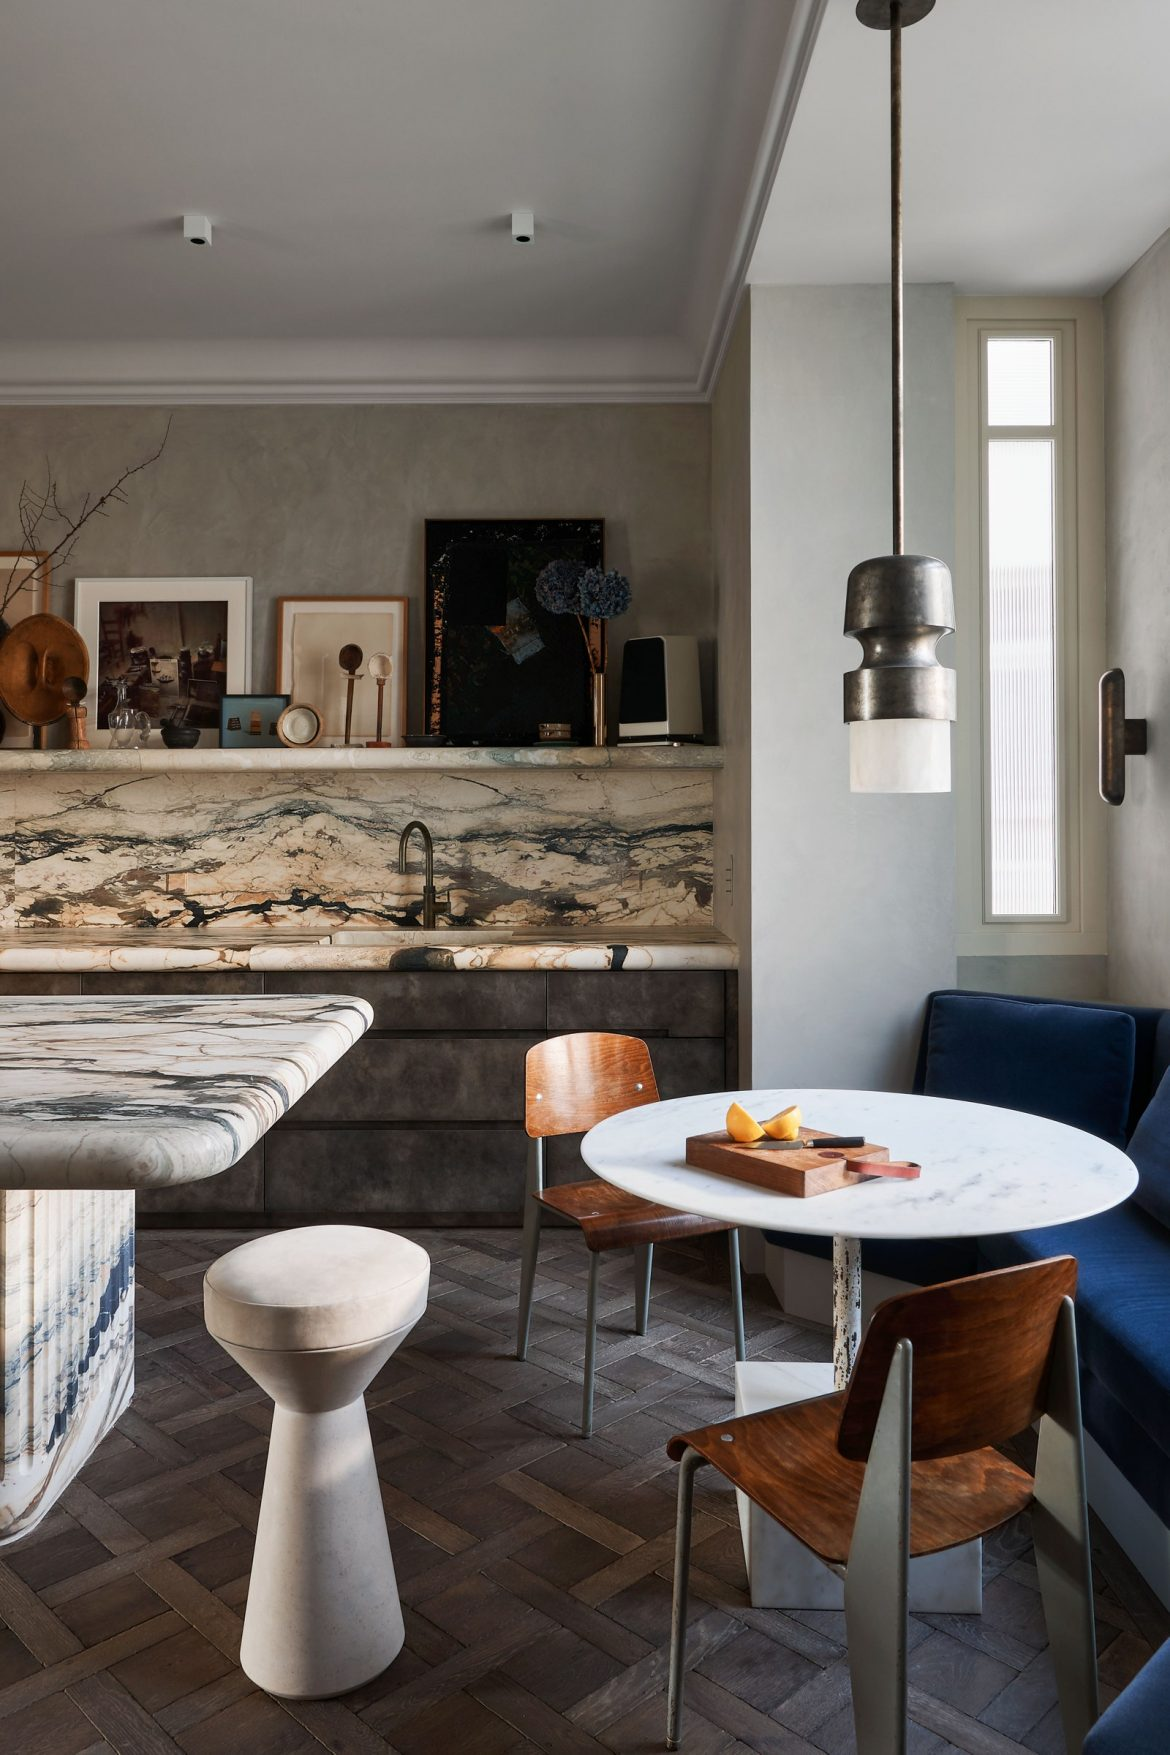 Discover AD's 2020 Great Design Awards: Kitchens great design awards Discover AD's 2020 Great Design Awards: Kitchens discover ads 2020 great design awards kitchens 3